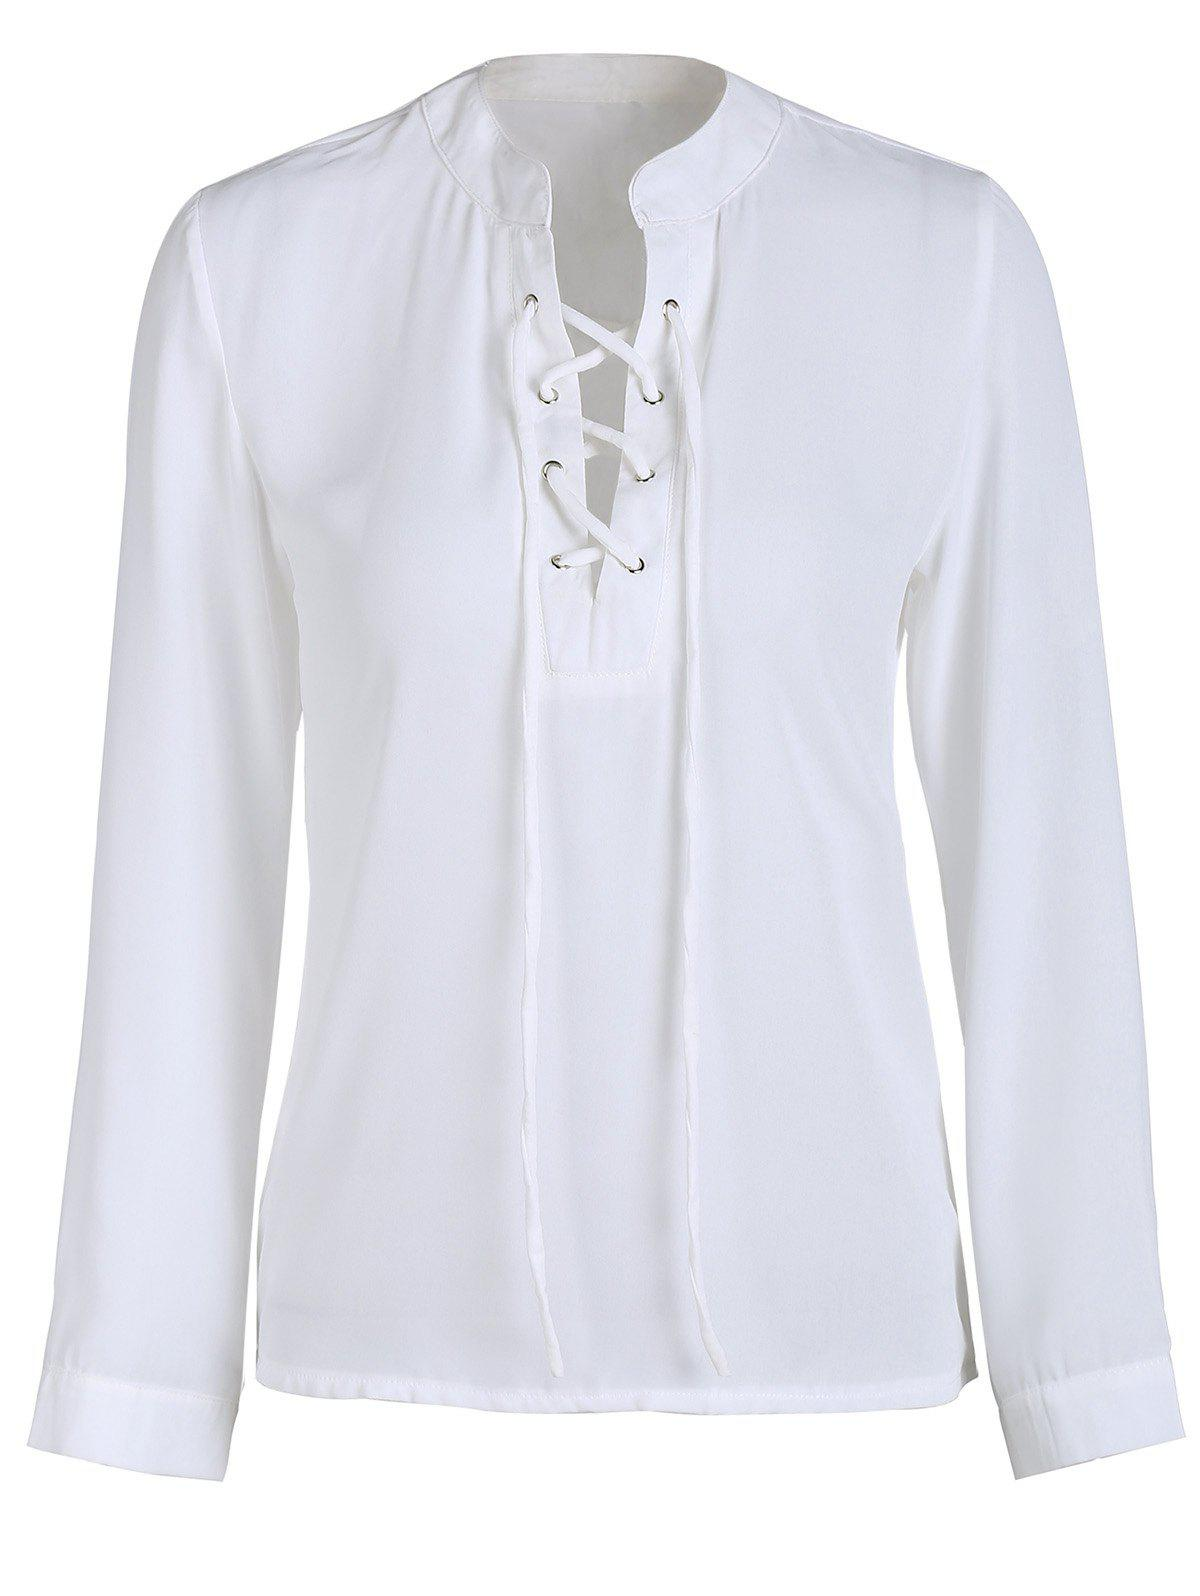 Trendy V-Neck Lace-Up Chiffon Long Sleeve Blouse For Women - WHITE L